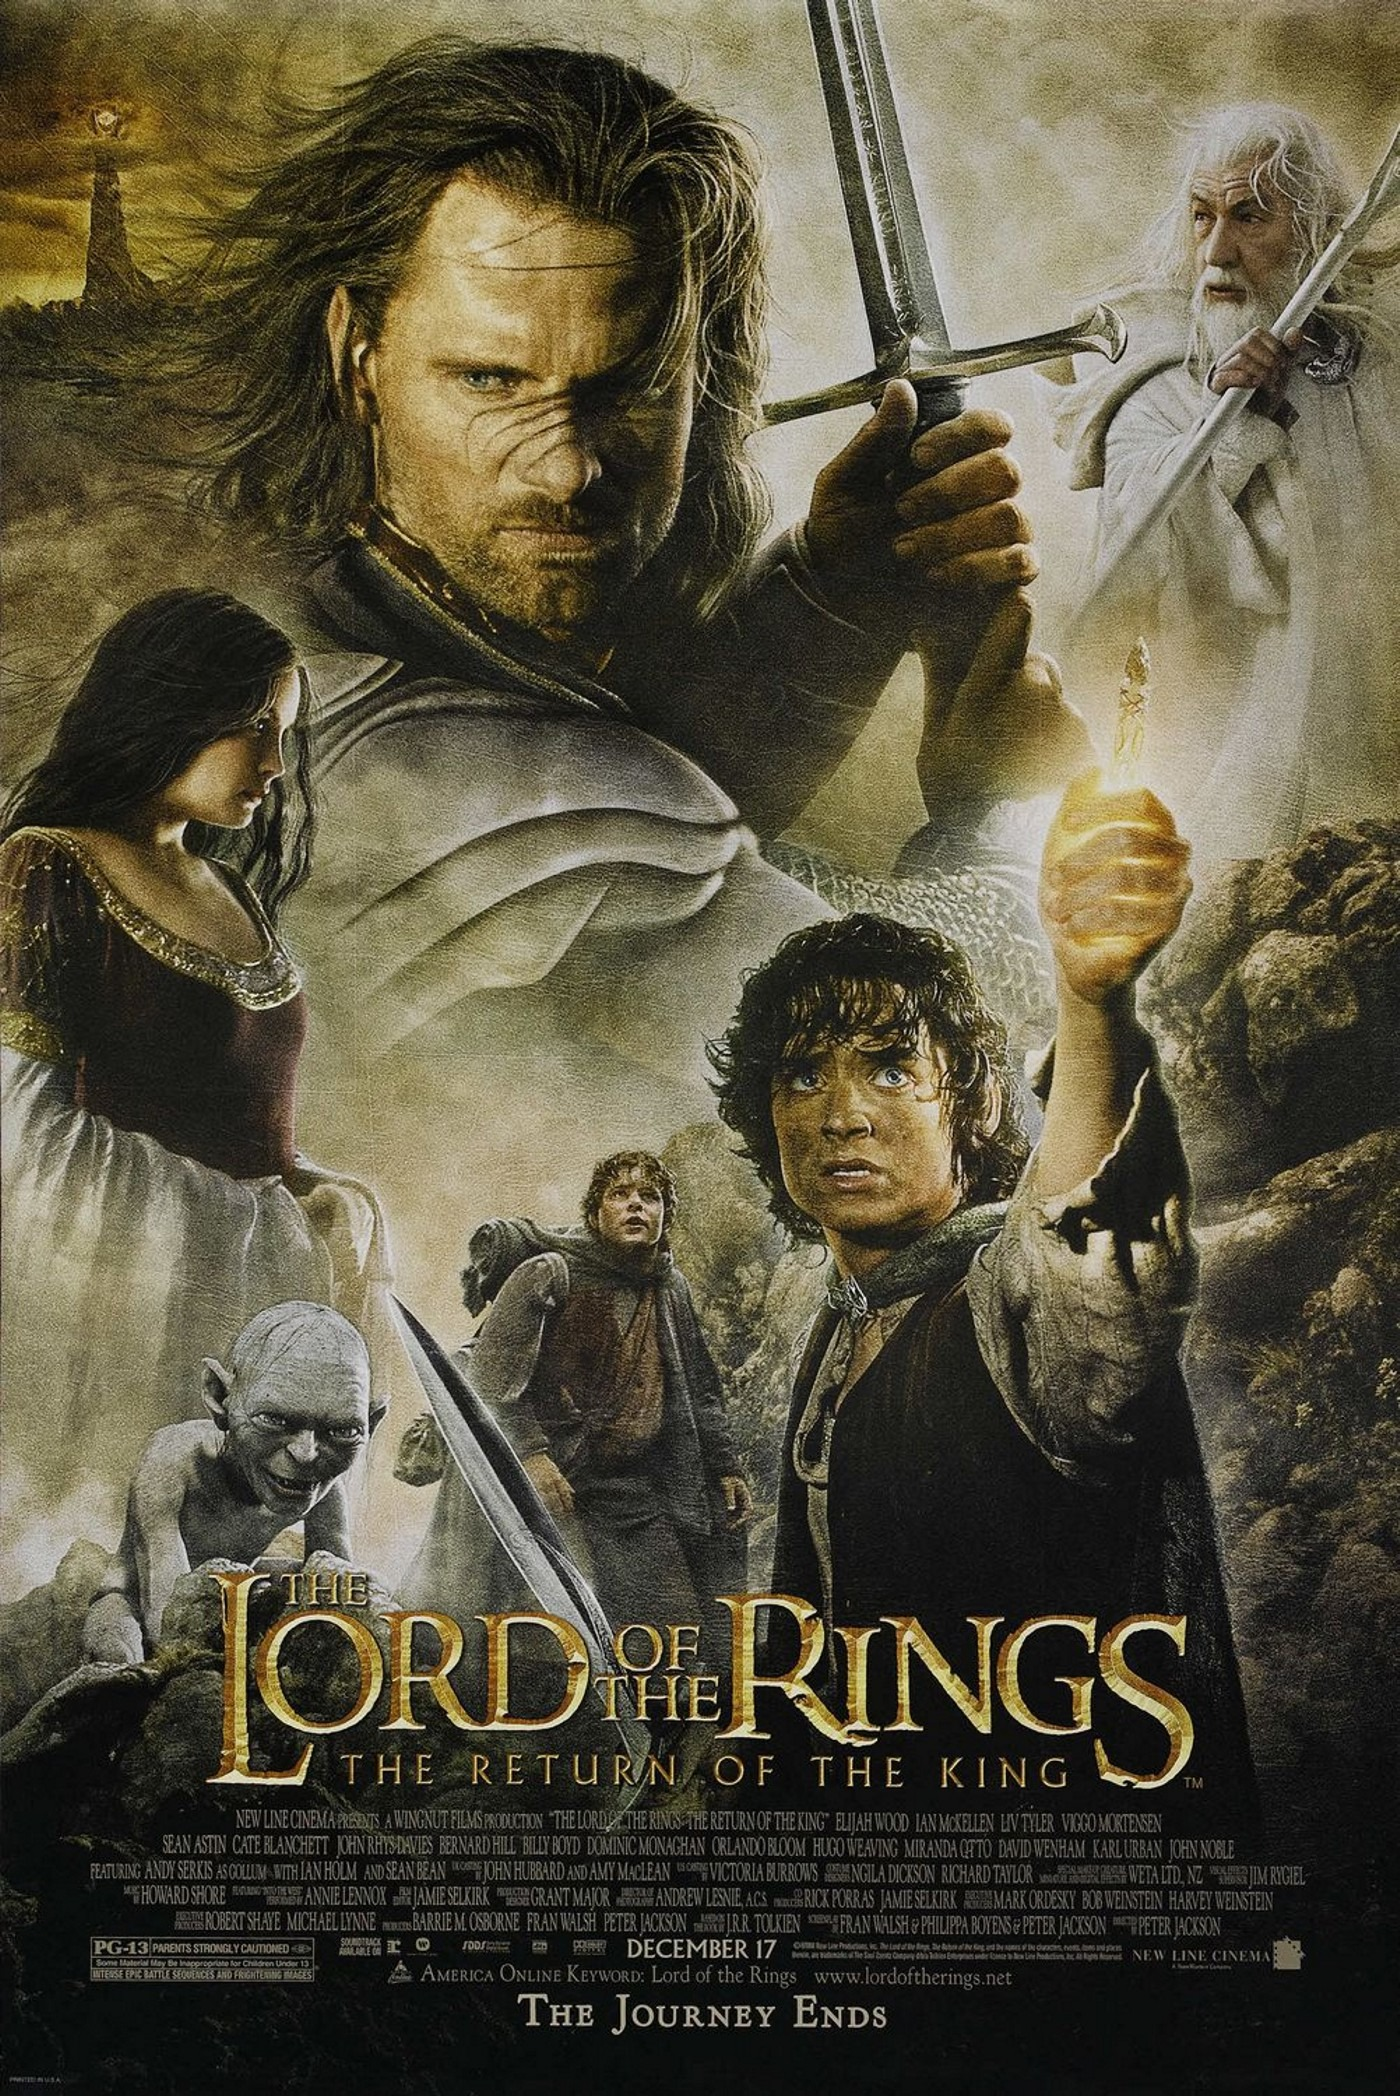 Lord of the rings the return of the king full movie